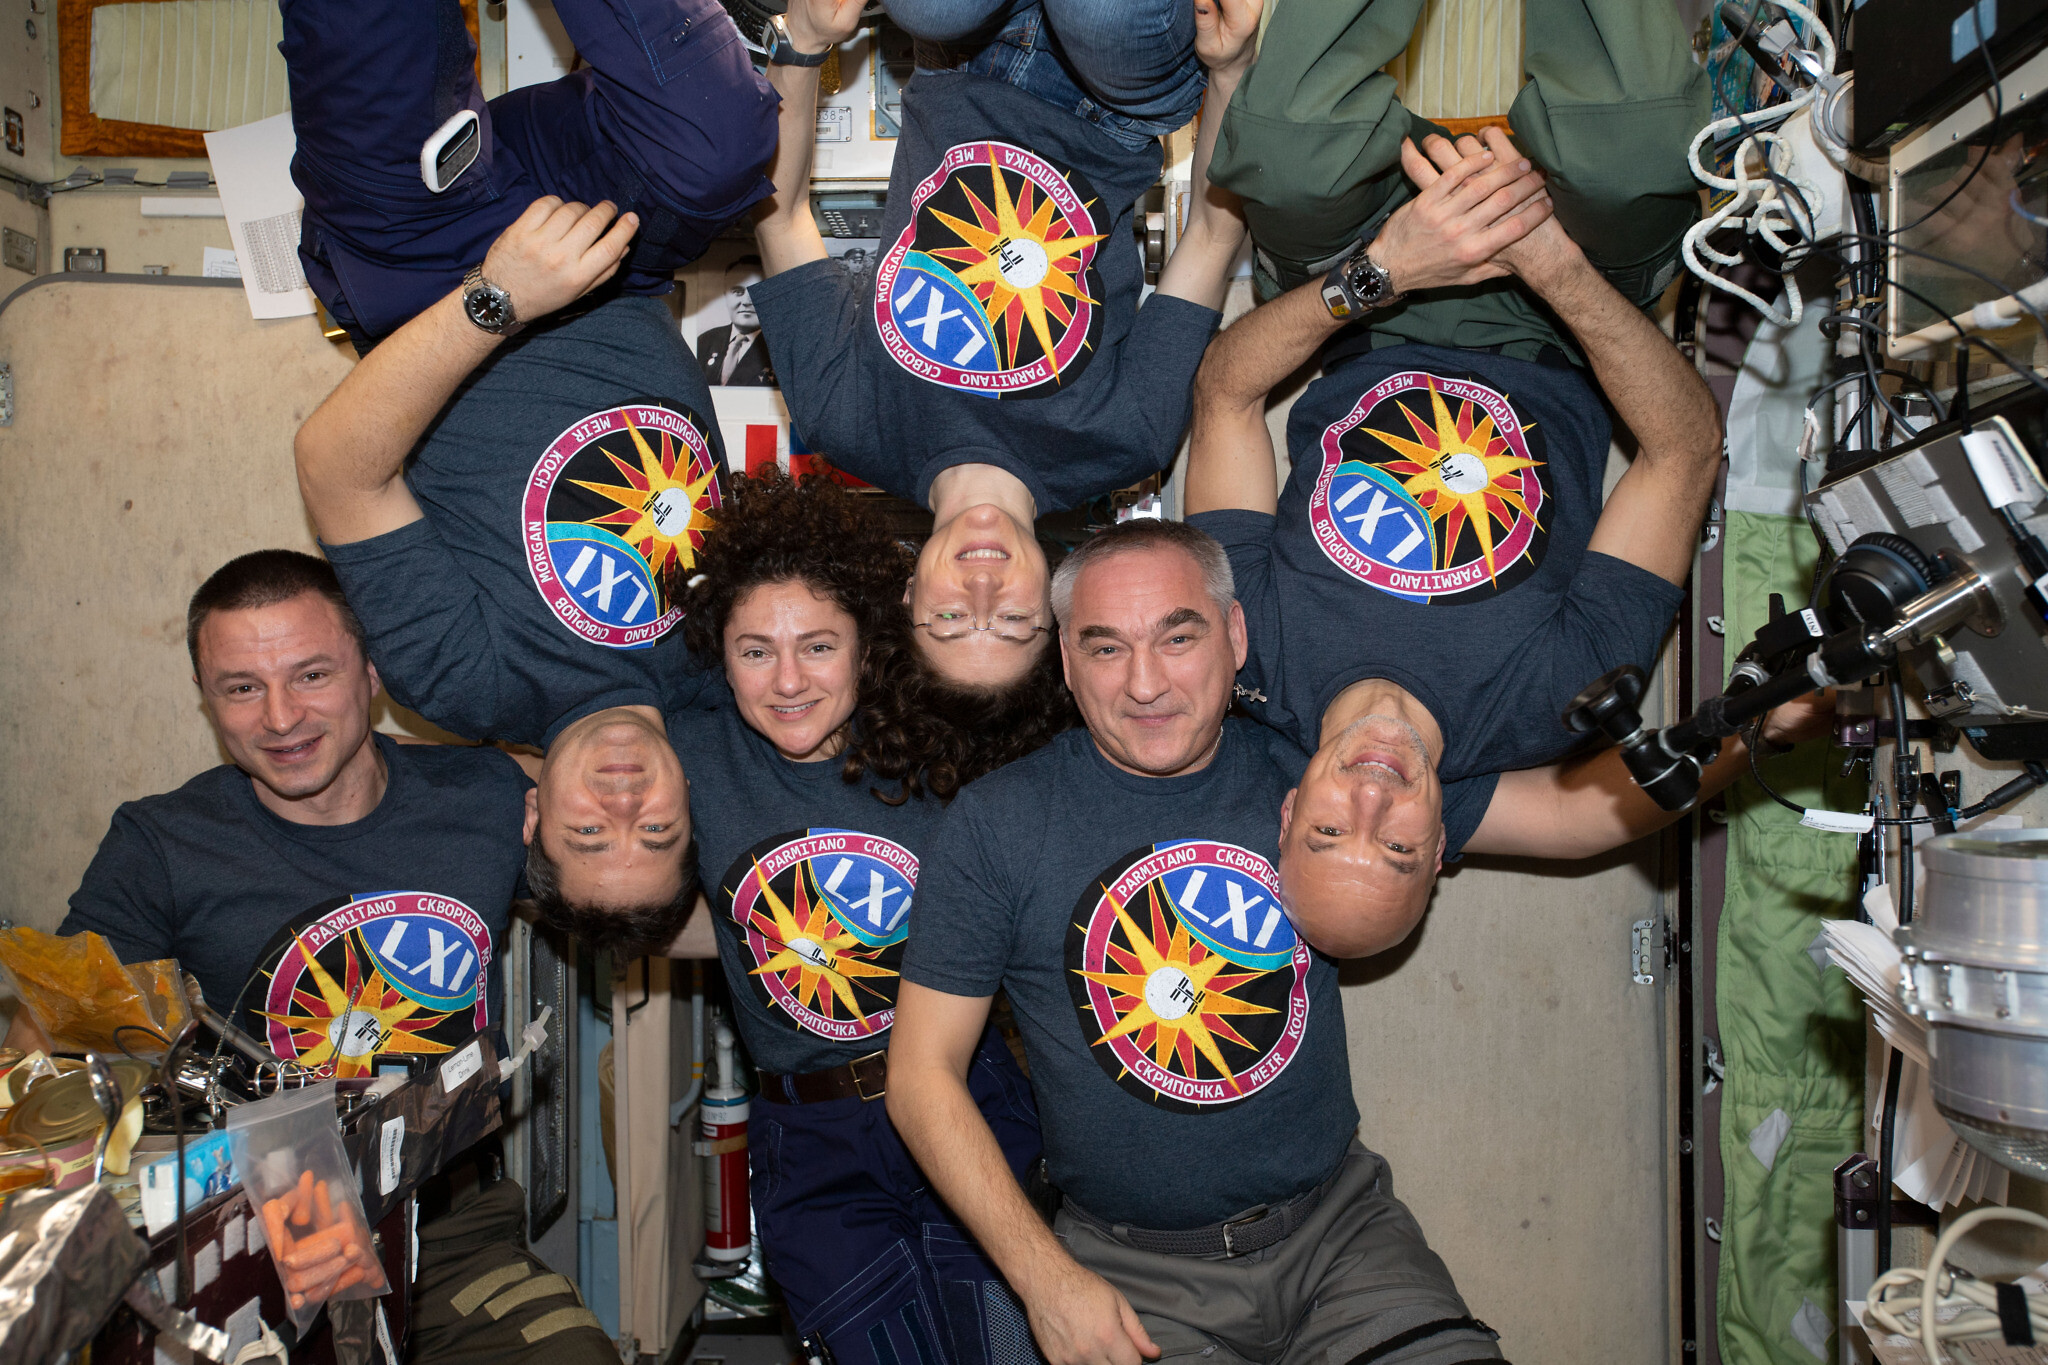 NASA astronaut Jessica Meir (third from left) with crew mates on the International Space Station. (NASA)